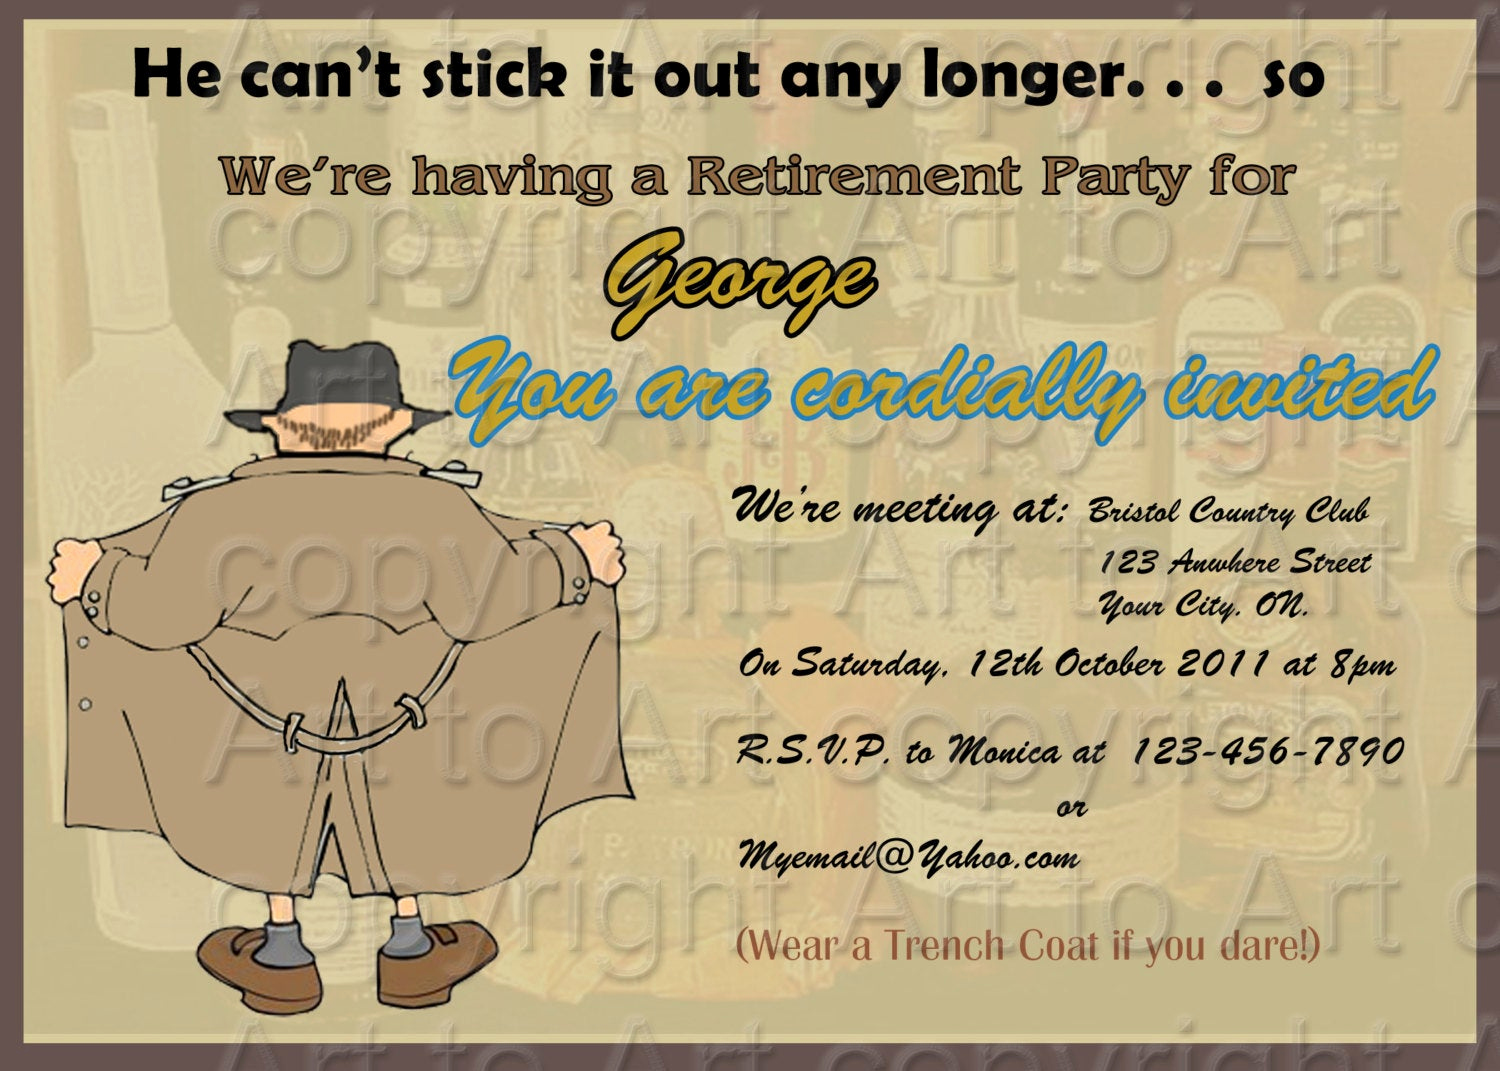 Retirement Party Invites Template Best Of Retirement Party Invitation 180 Personalized Digital You